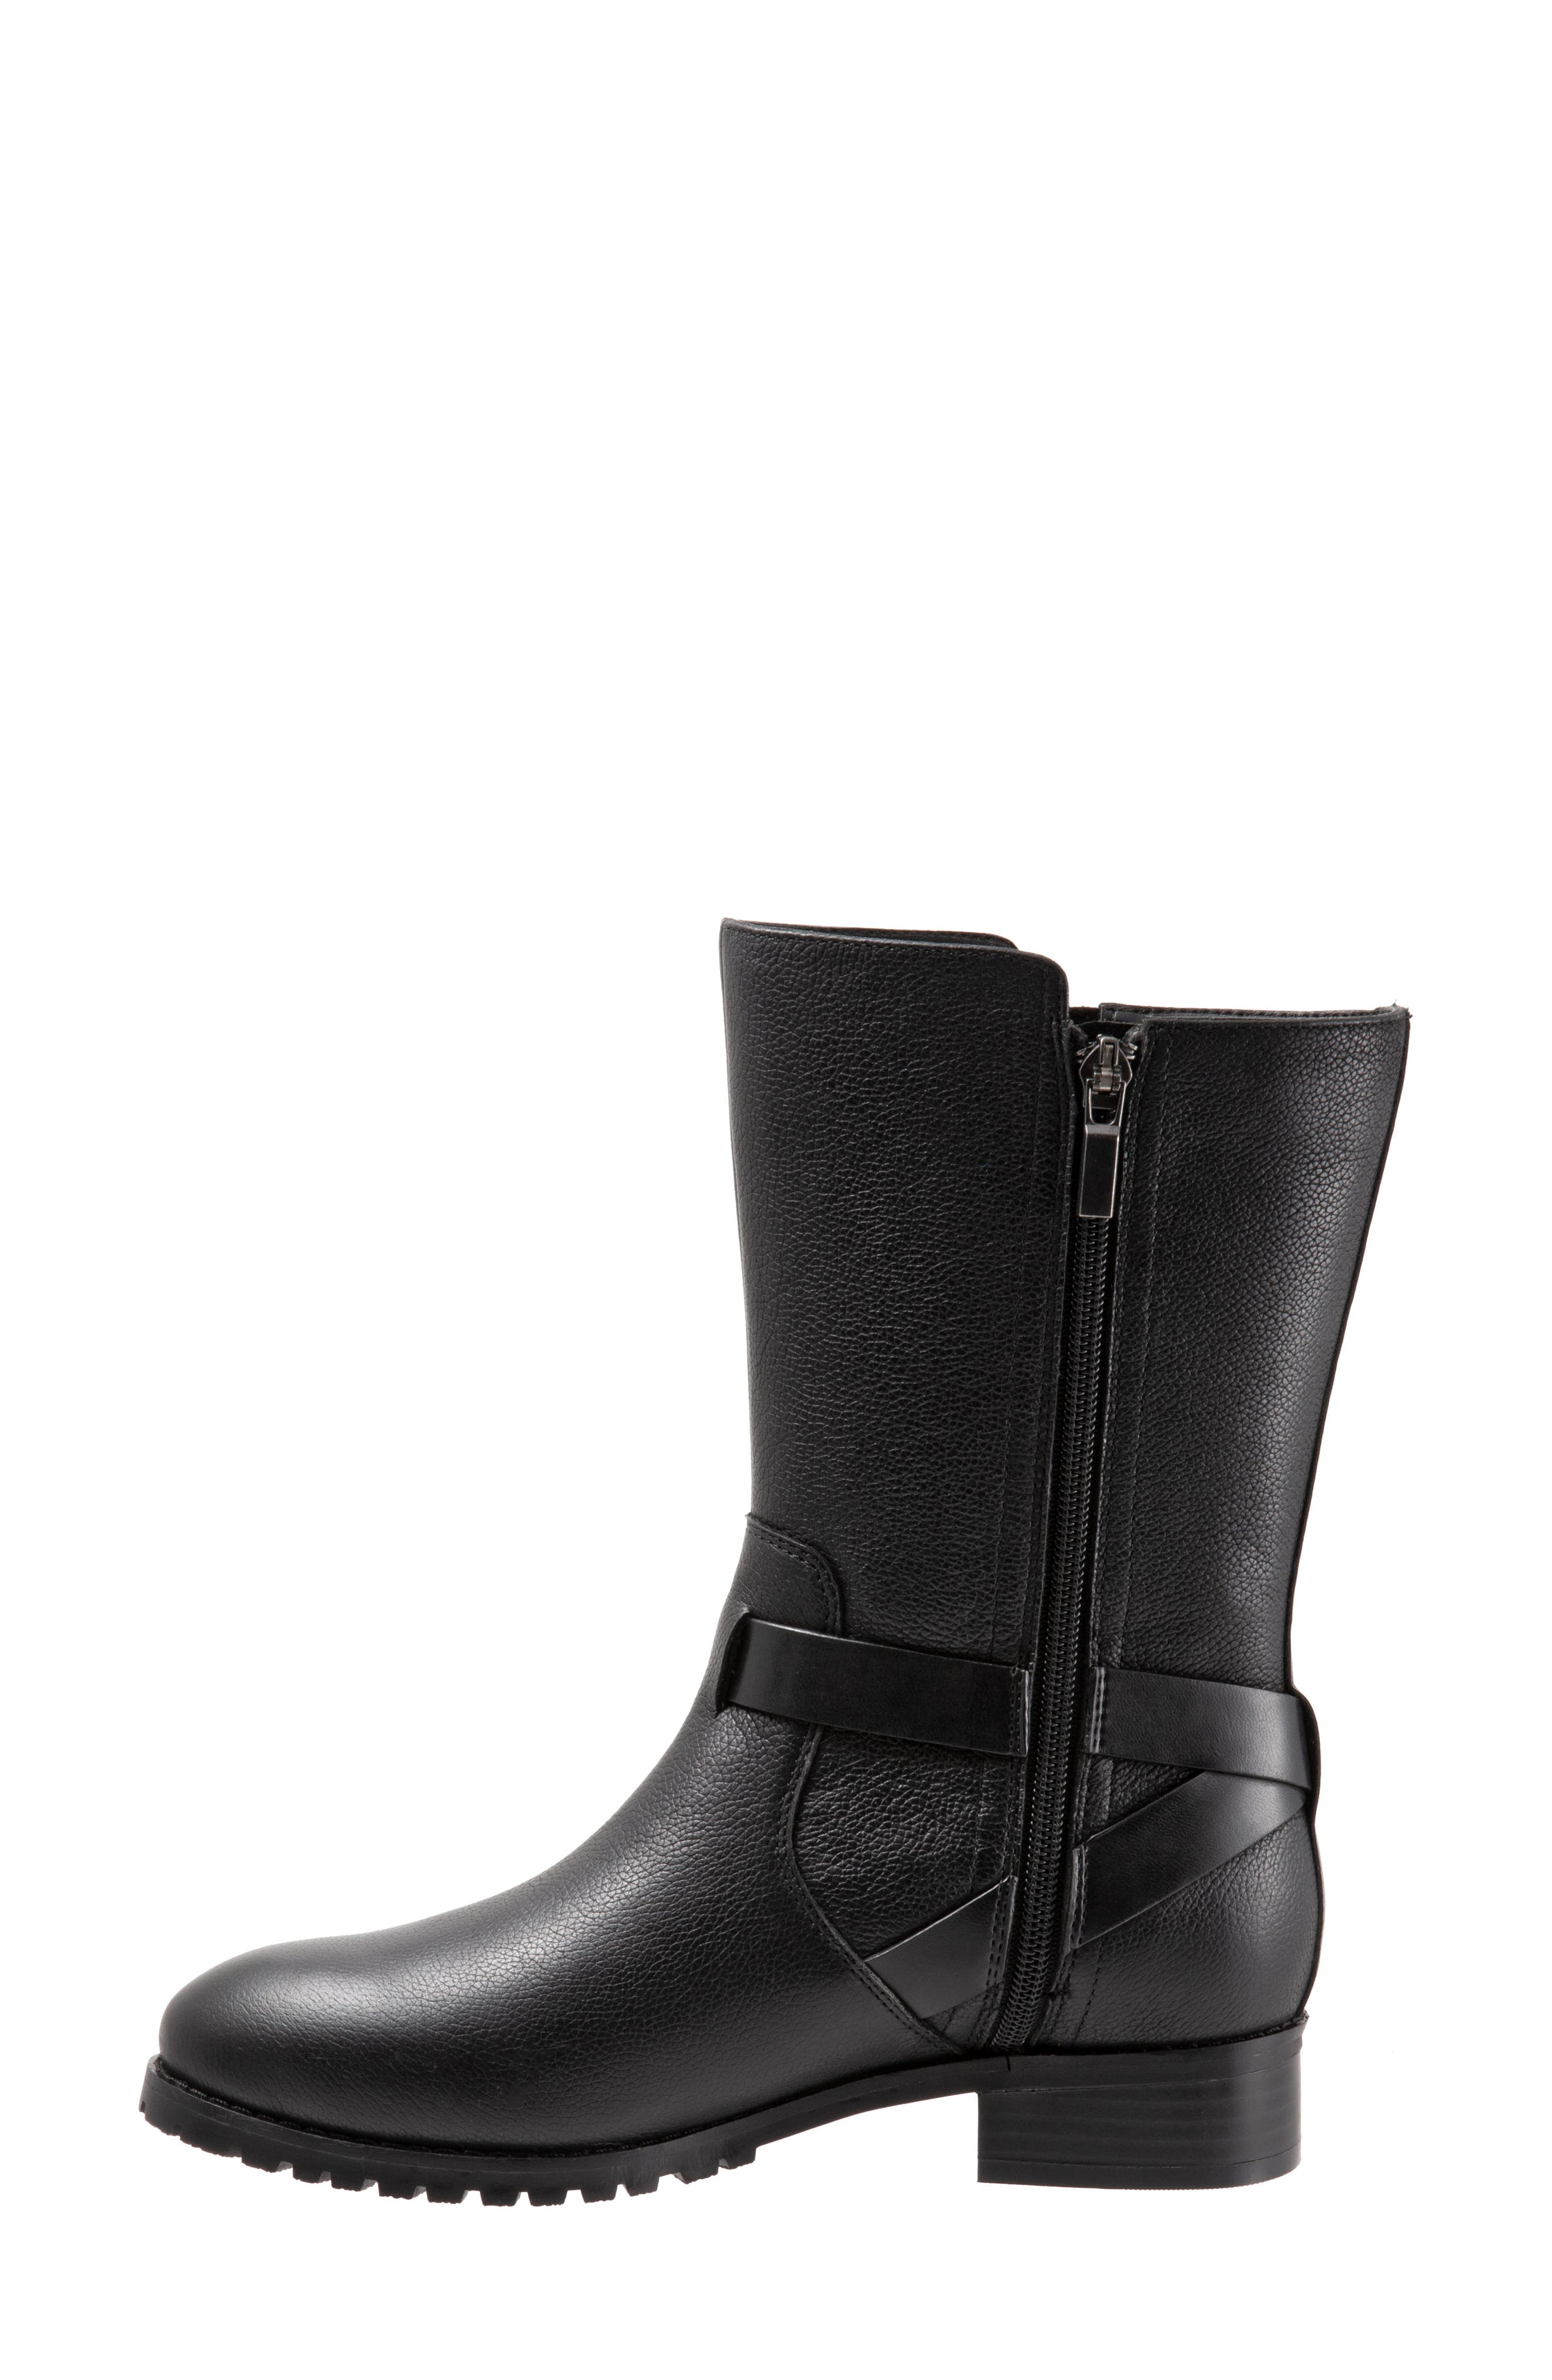 Marlowe Boot,                             Alternate thumbnail 8, color,                             BLACK LEATHER